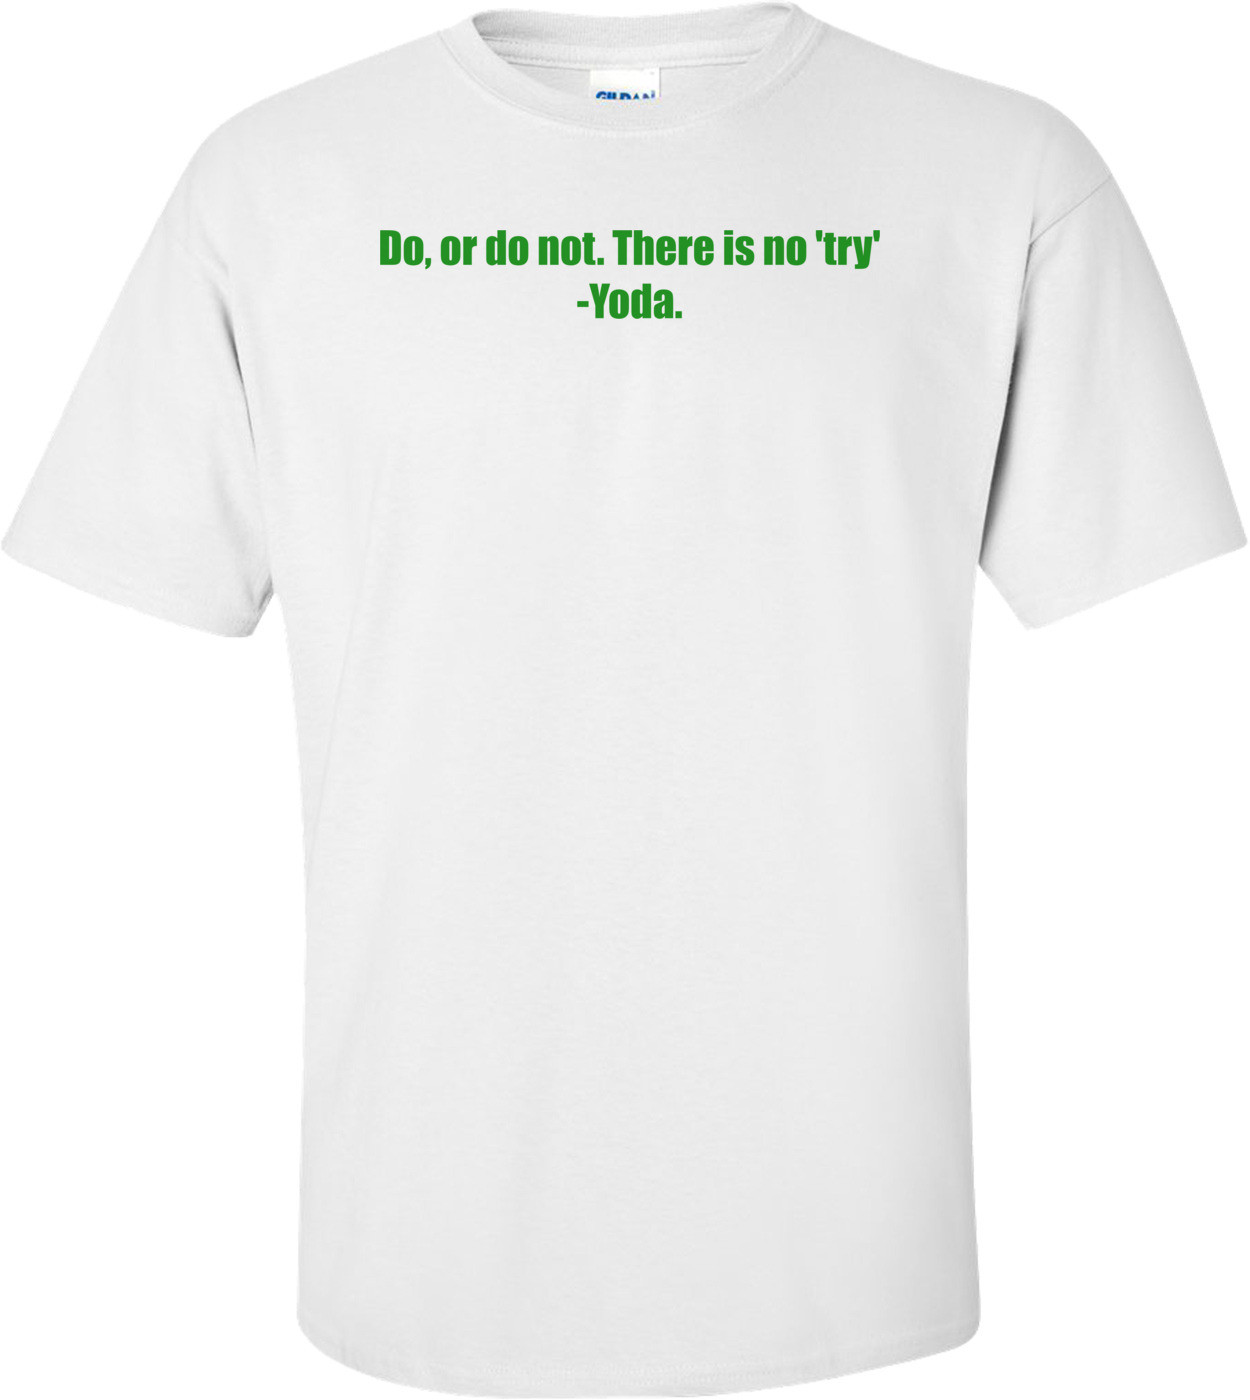 Do, or do not. There is no 'try' -Yoda. Shirt